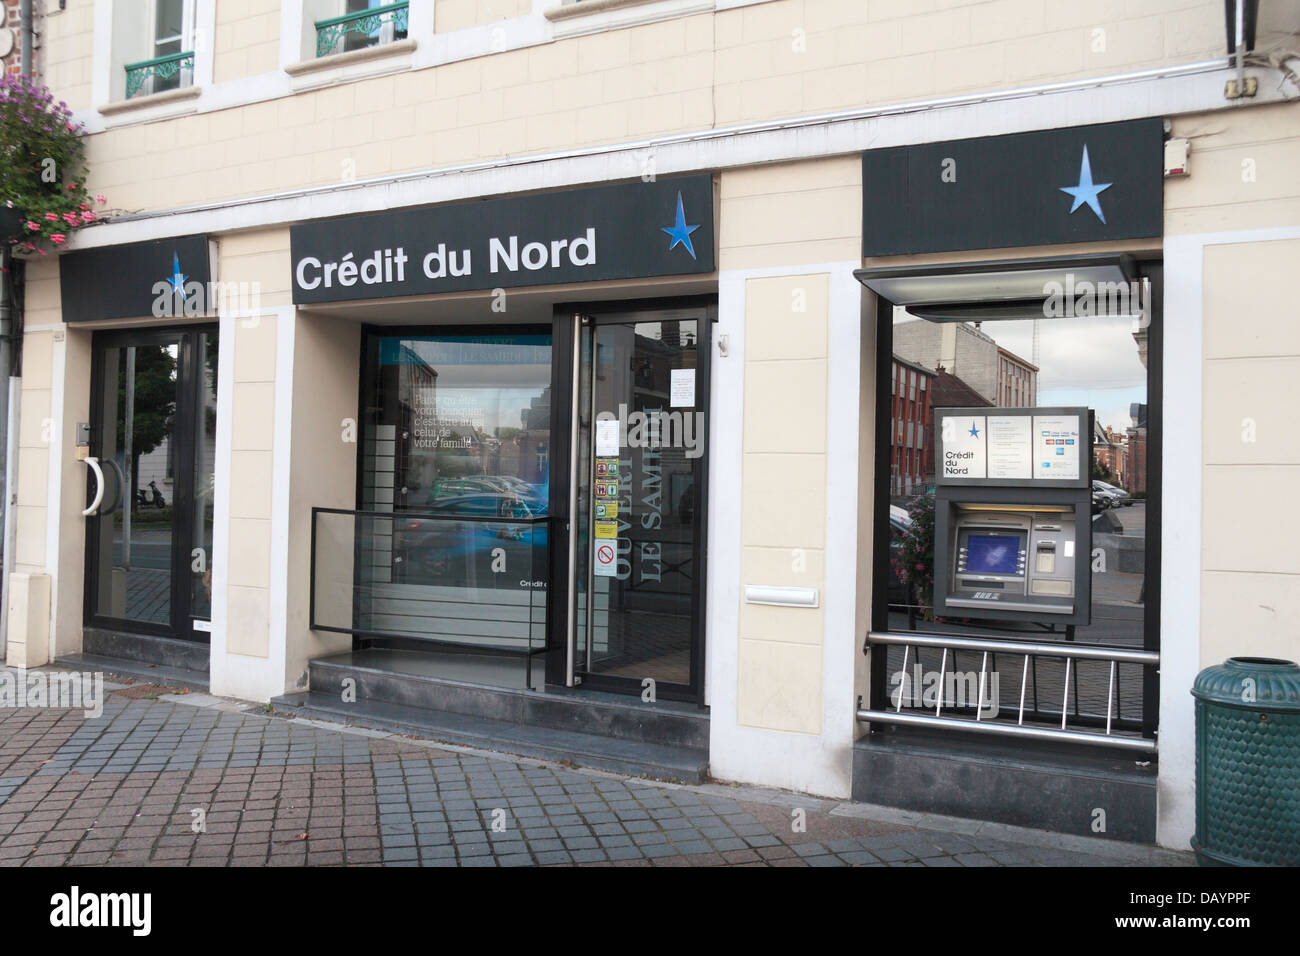 A Credit de Nord branch, a French retail banking network, in Doullens, Somme, Picardy, France. - Stock Image